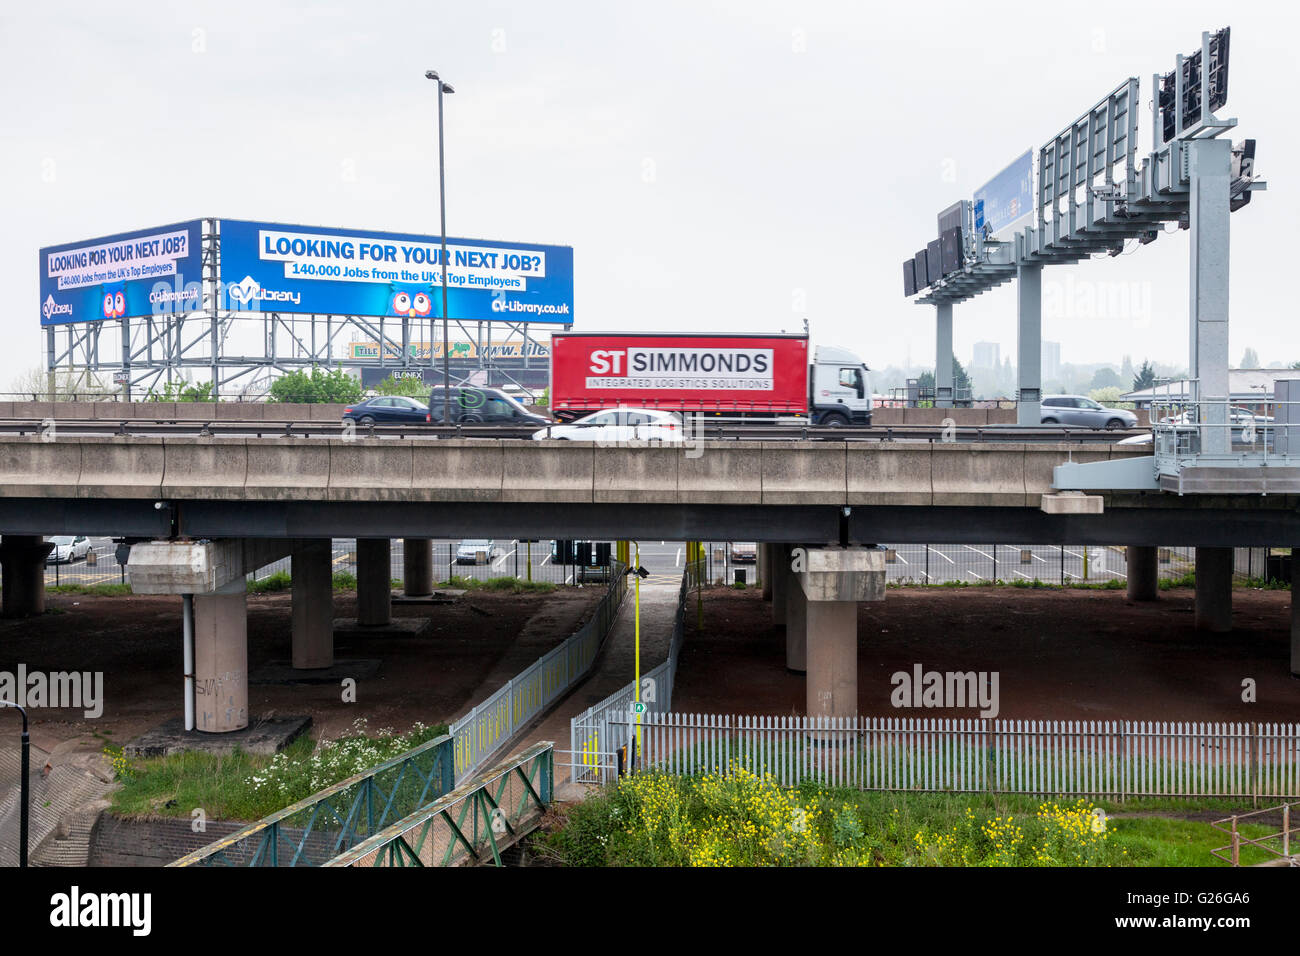 M6 motorway with a road sign gantry and high level electronic advertising billboard, Bescot, Walsall, West Midlands, Stock Photo